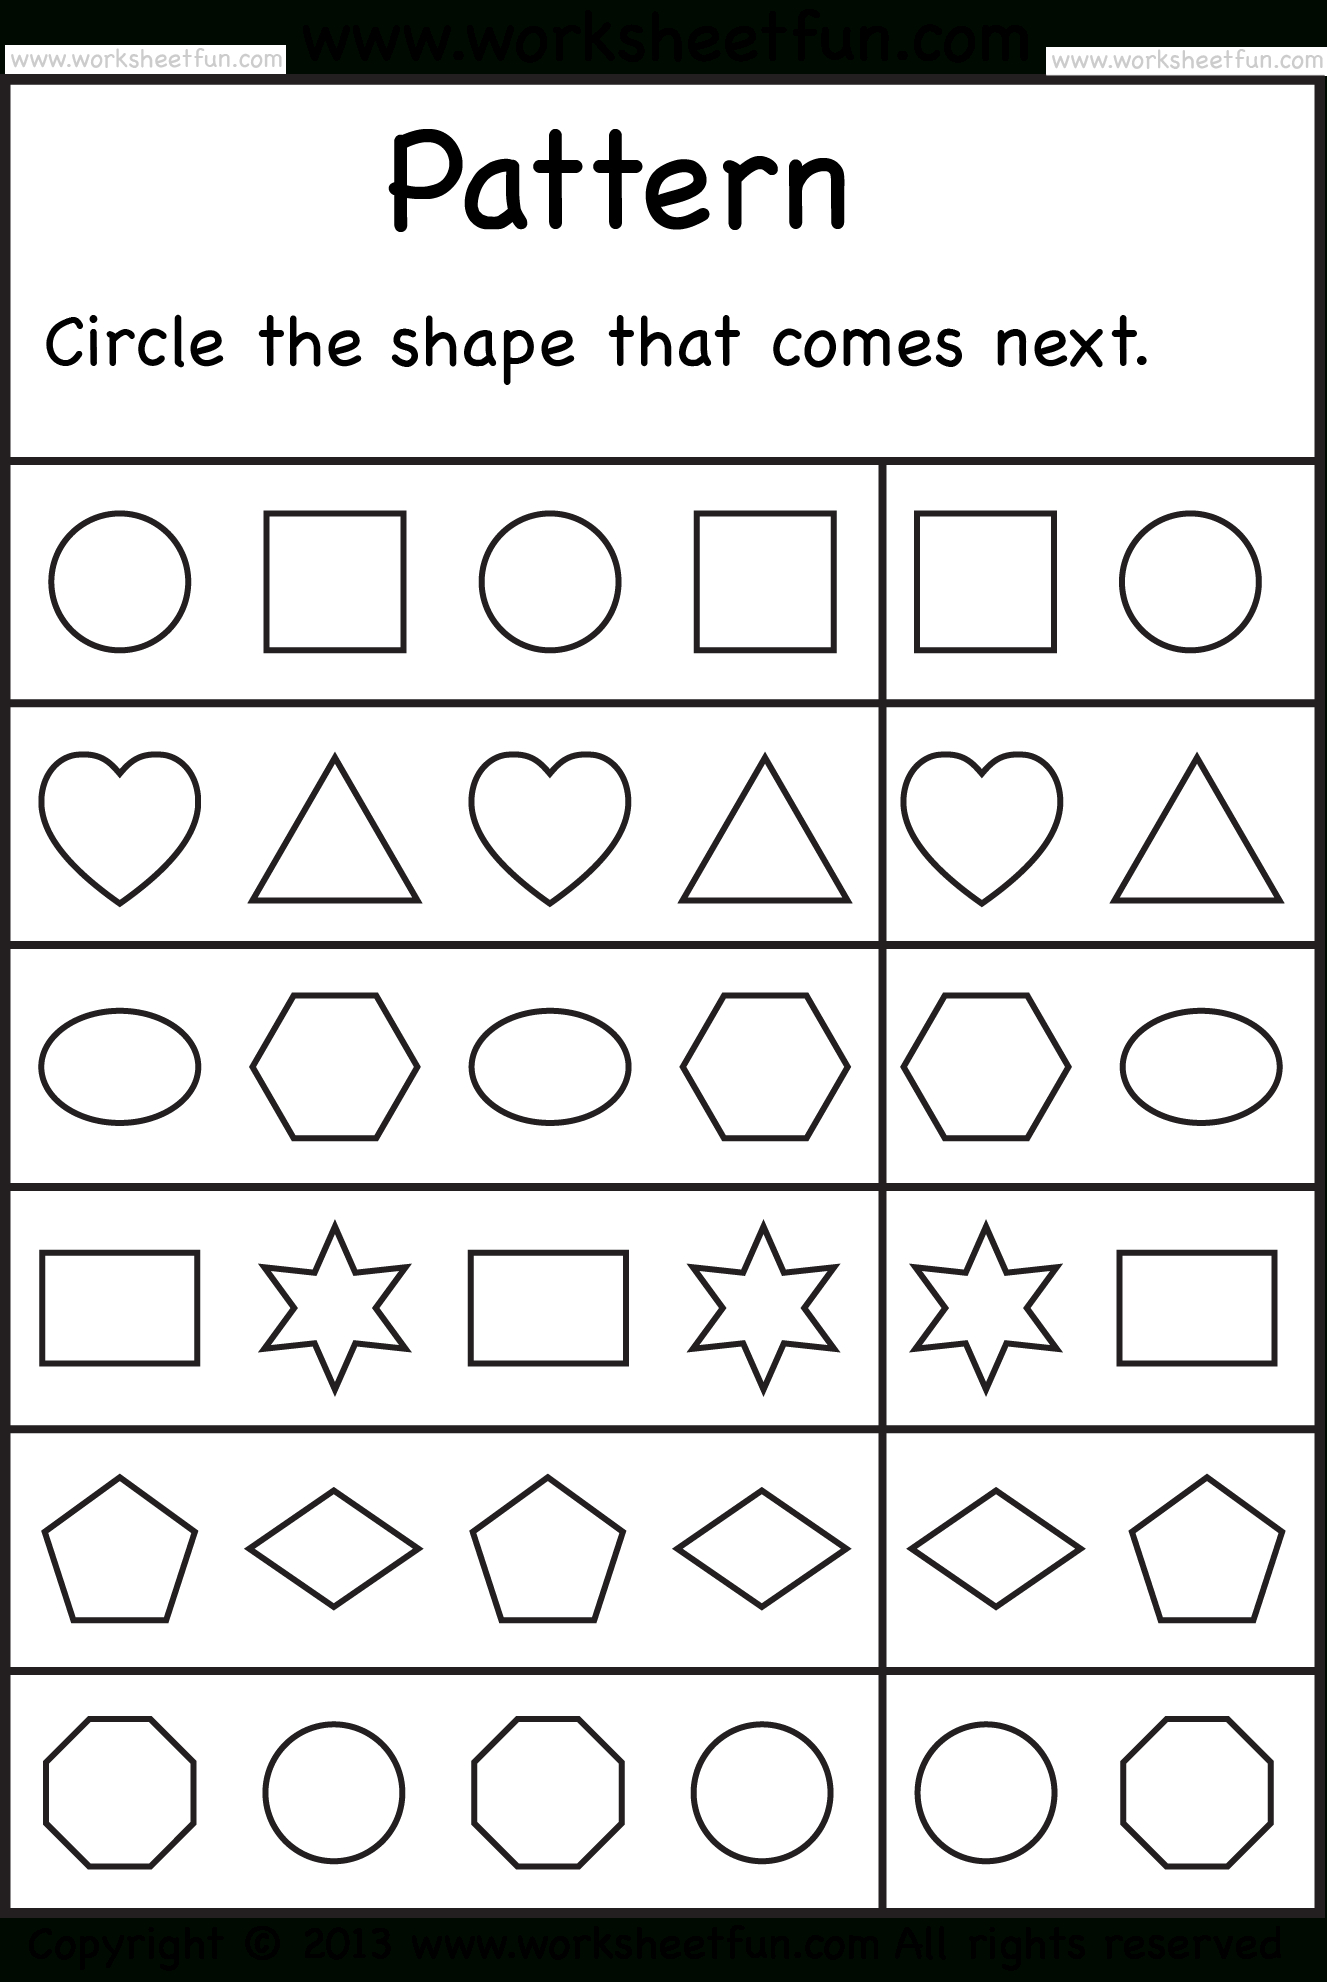 Free Printable Worksheets – Worksheetfun / Free Printable - Free Printable Worksheets For Kg1